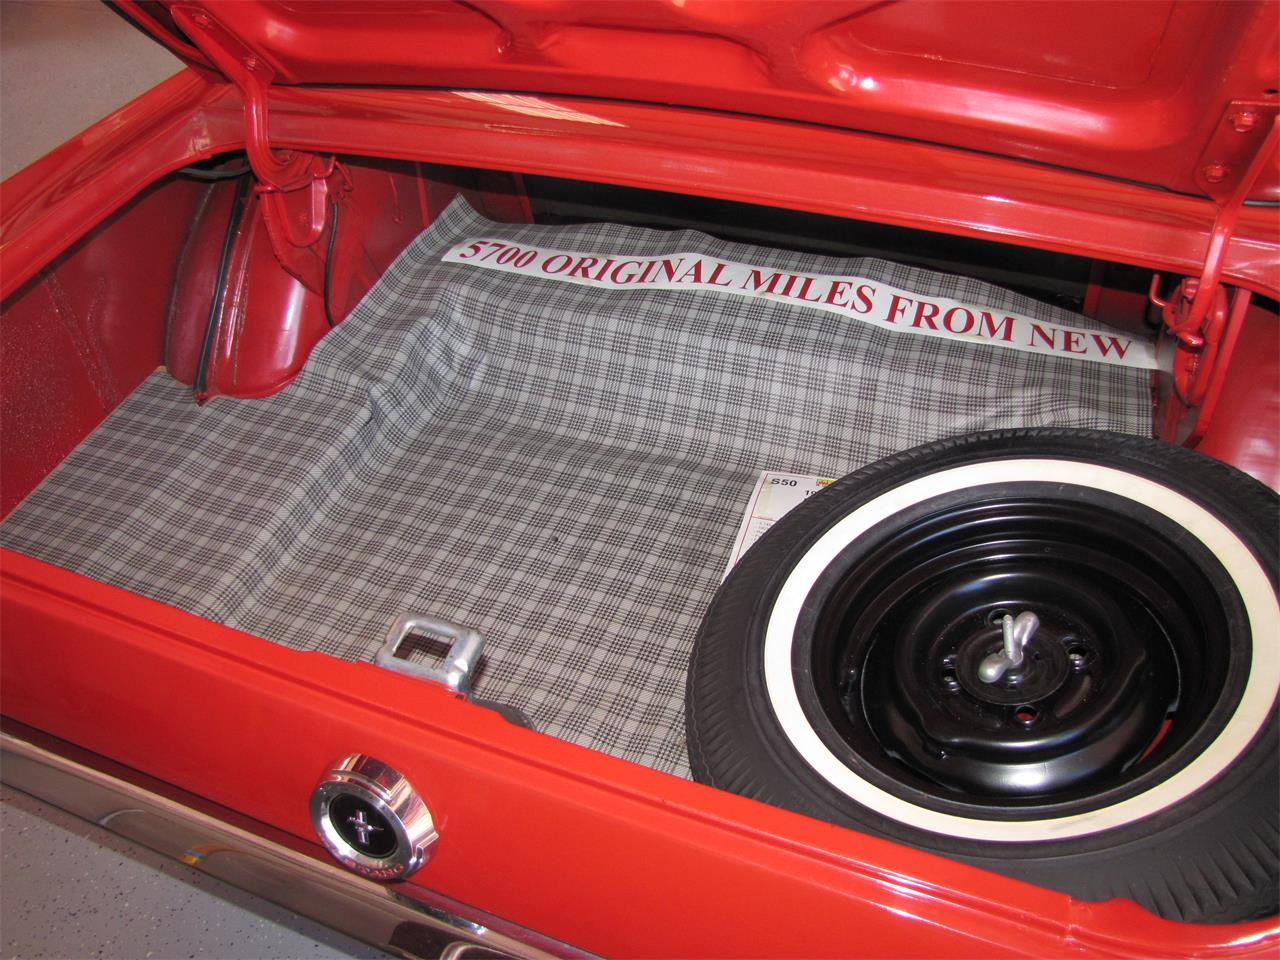 Large Picture of 1965 Ford Mustang located in Granite Bay California - $23,500.00 - Q6BT